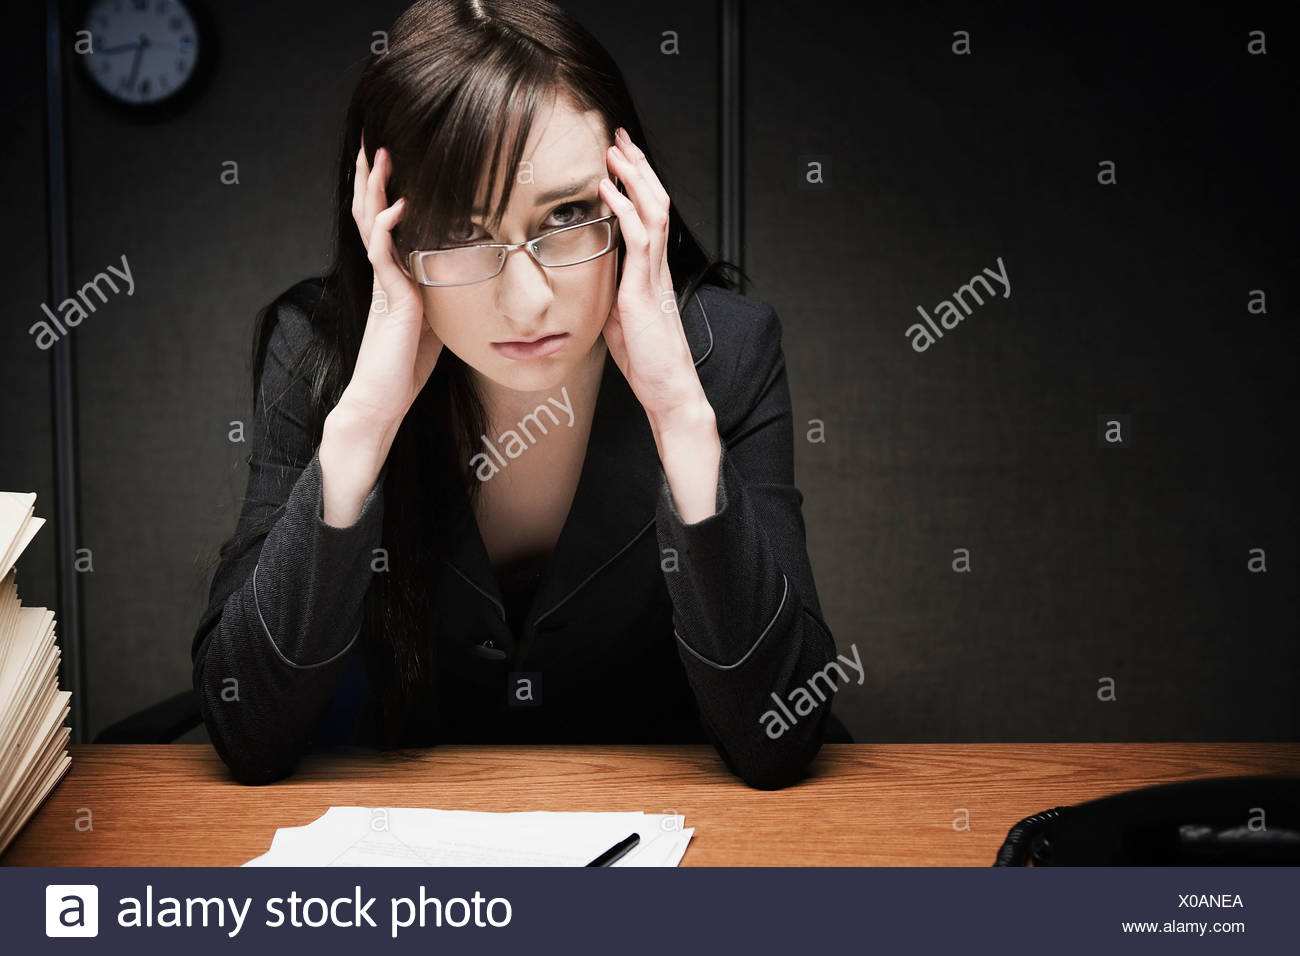 Stressed businesswoman at desk - Stock Image